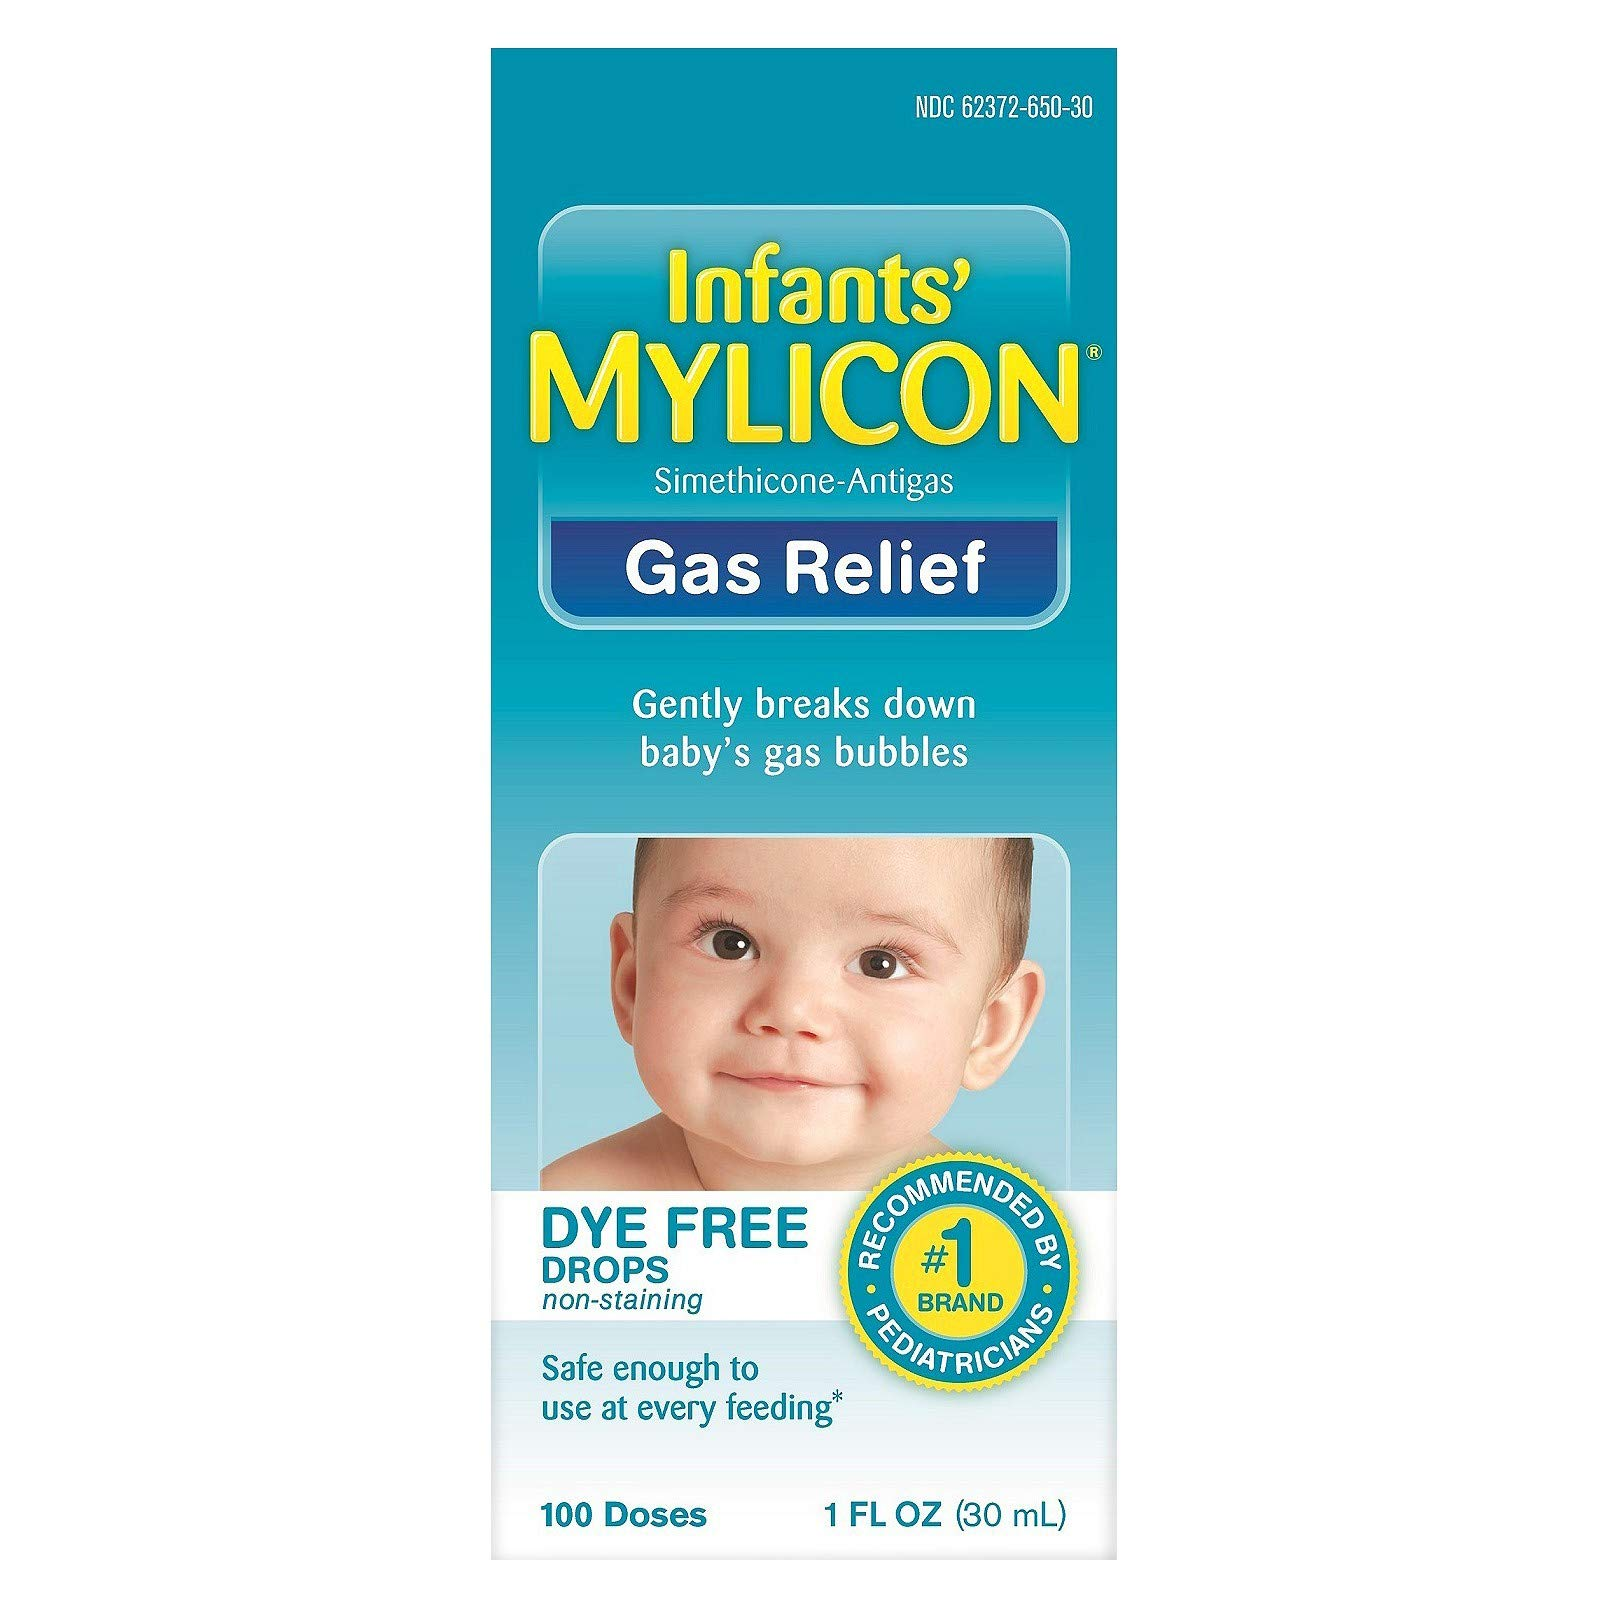 Mylicon Infants' Gas Relief Dye Free Drops - 1 oz, Pack of 3 by Mylicon